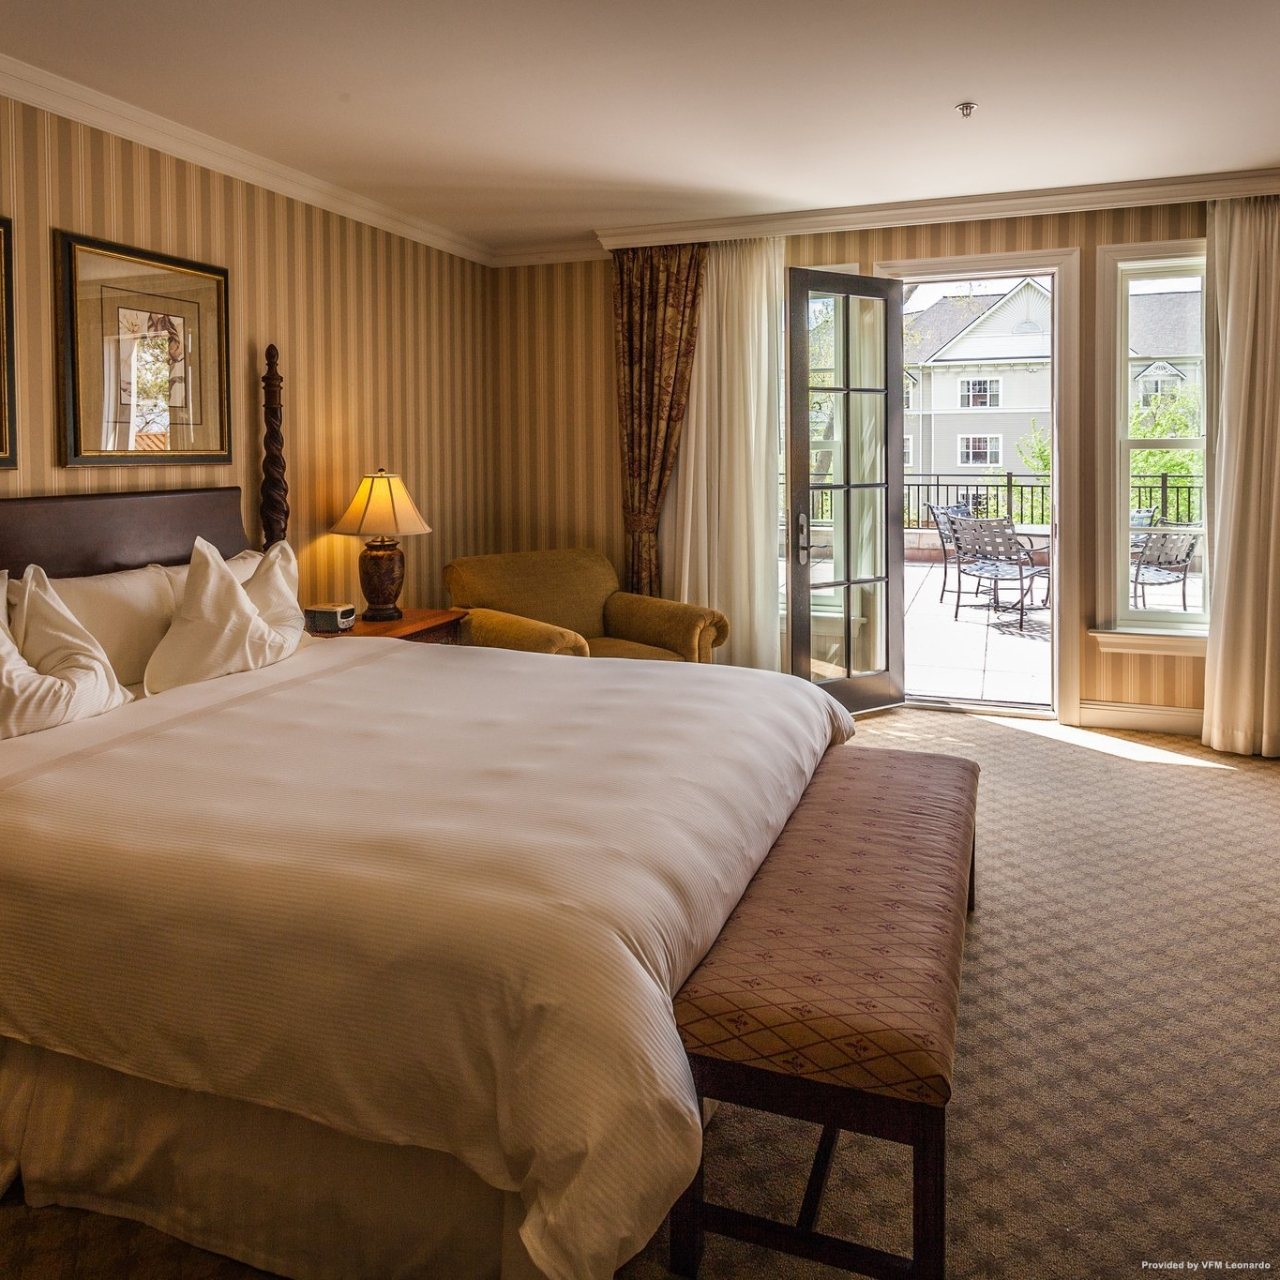 Royal Park Hotel United States Of America At Hrs With Free Services